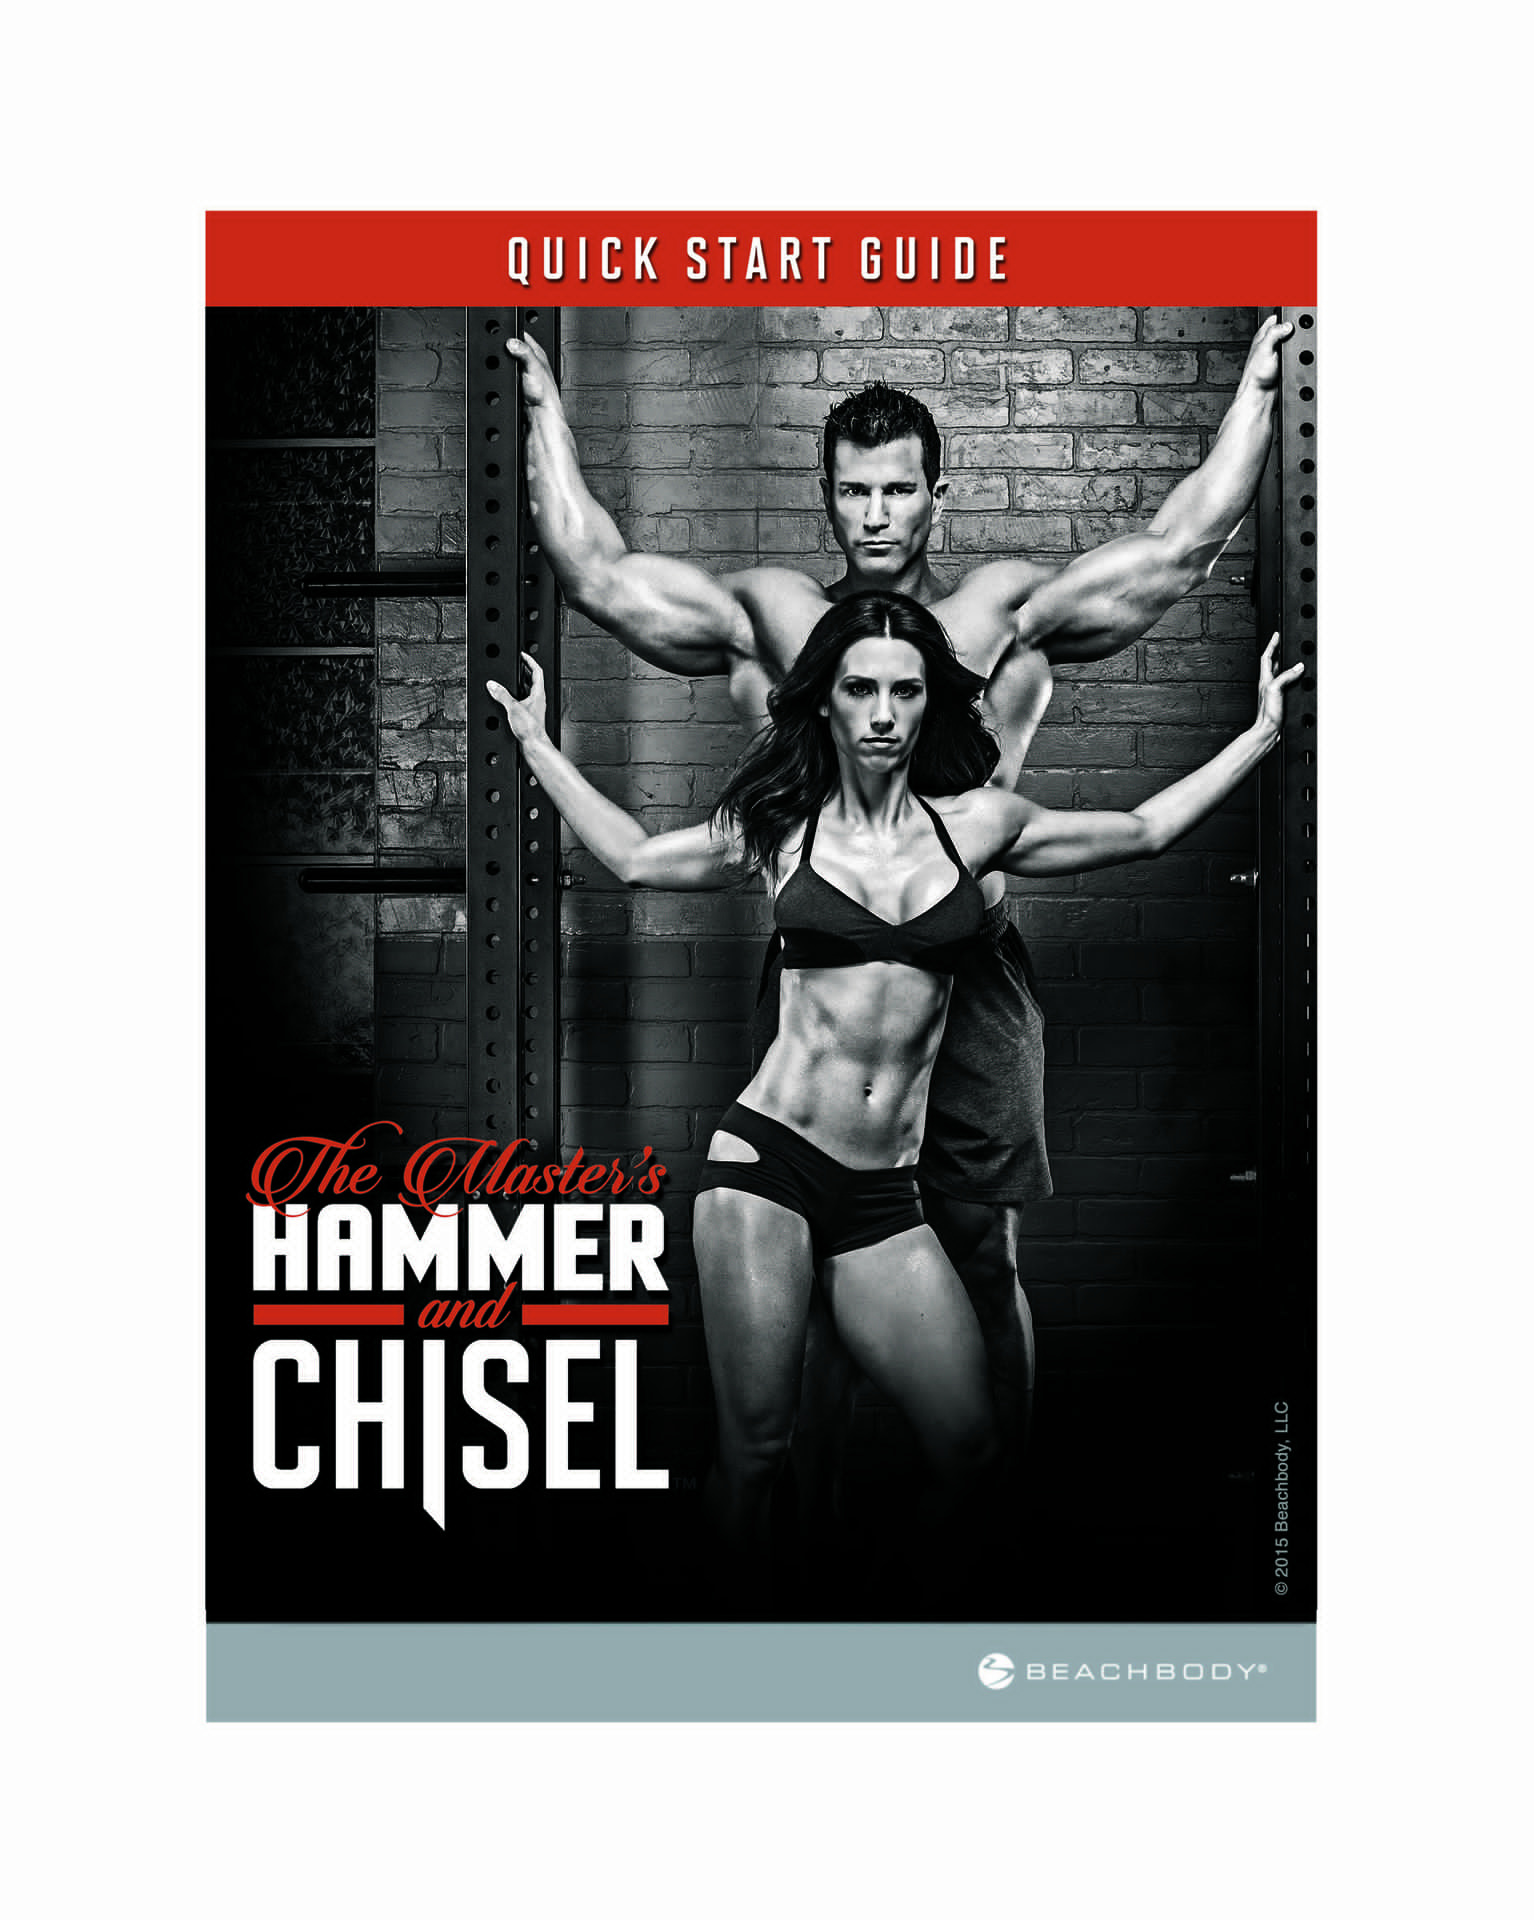 Alex_Ardenti_Sagi_Kalev_Autumn_Calabrese_hammer_and_chisel_beachbody_dvd_2